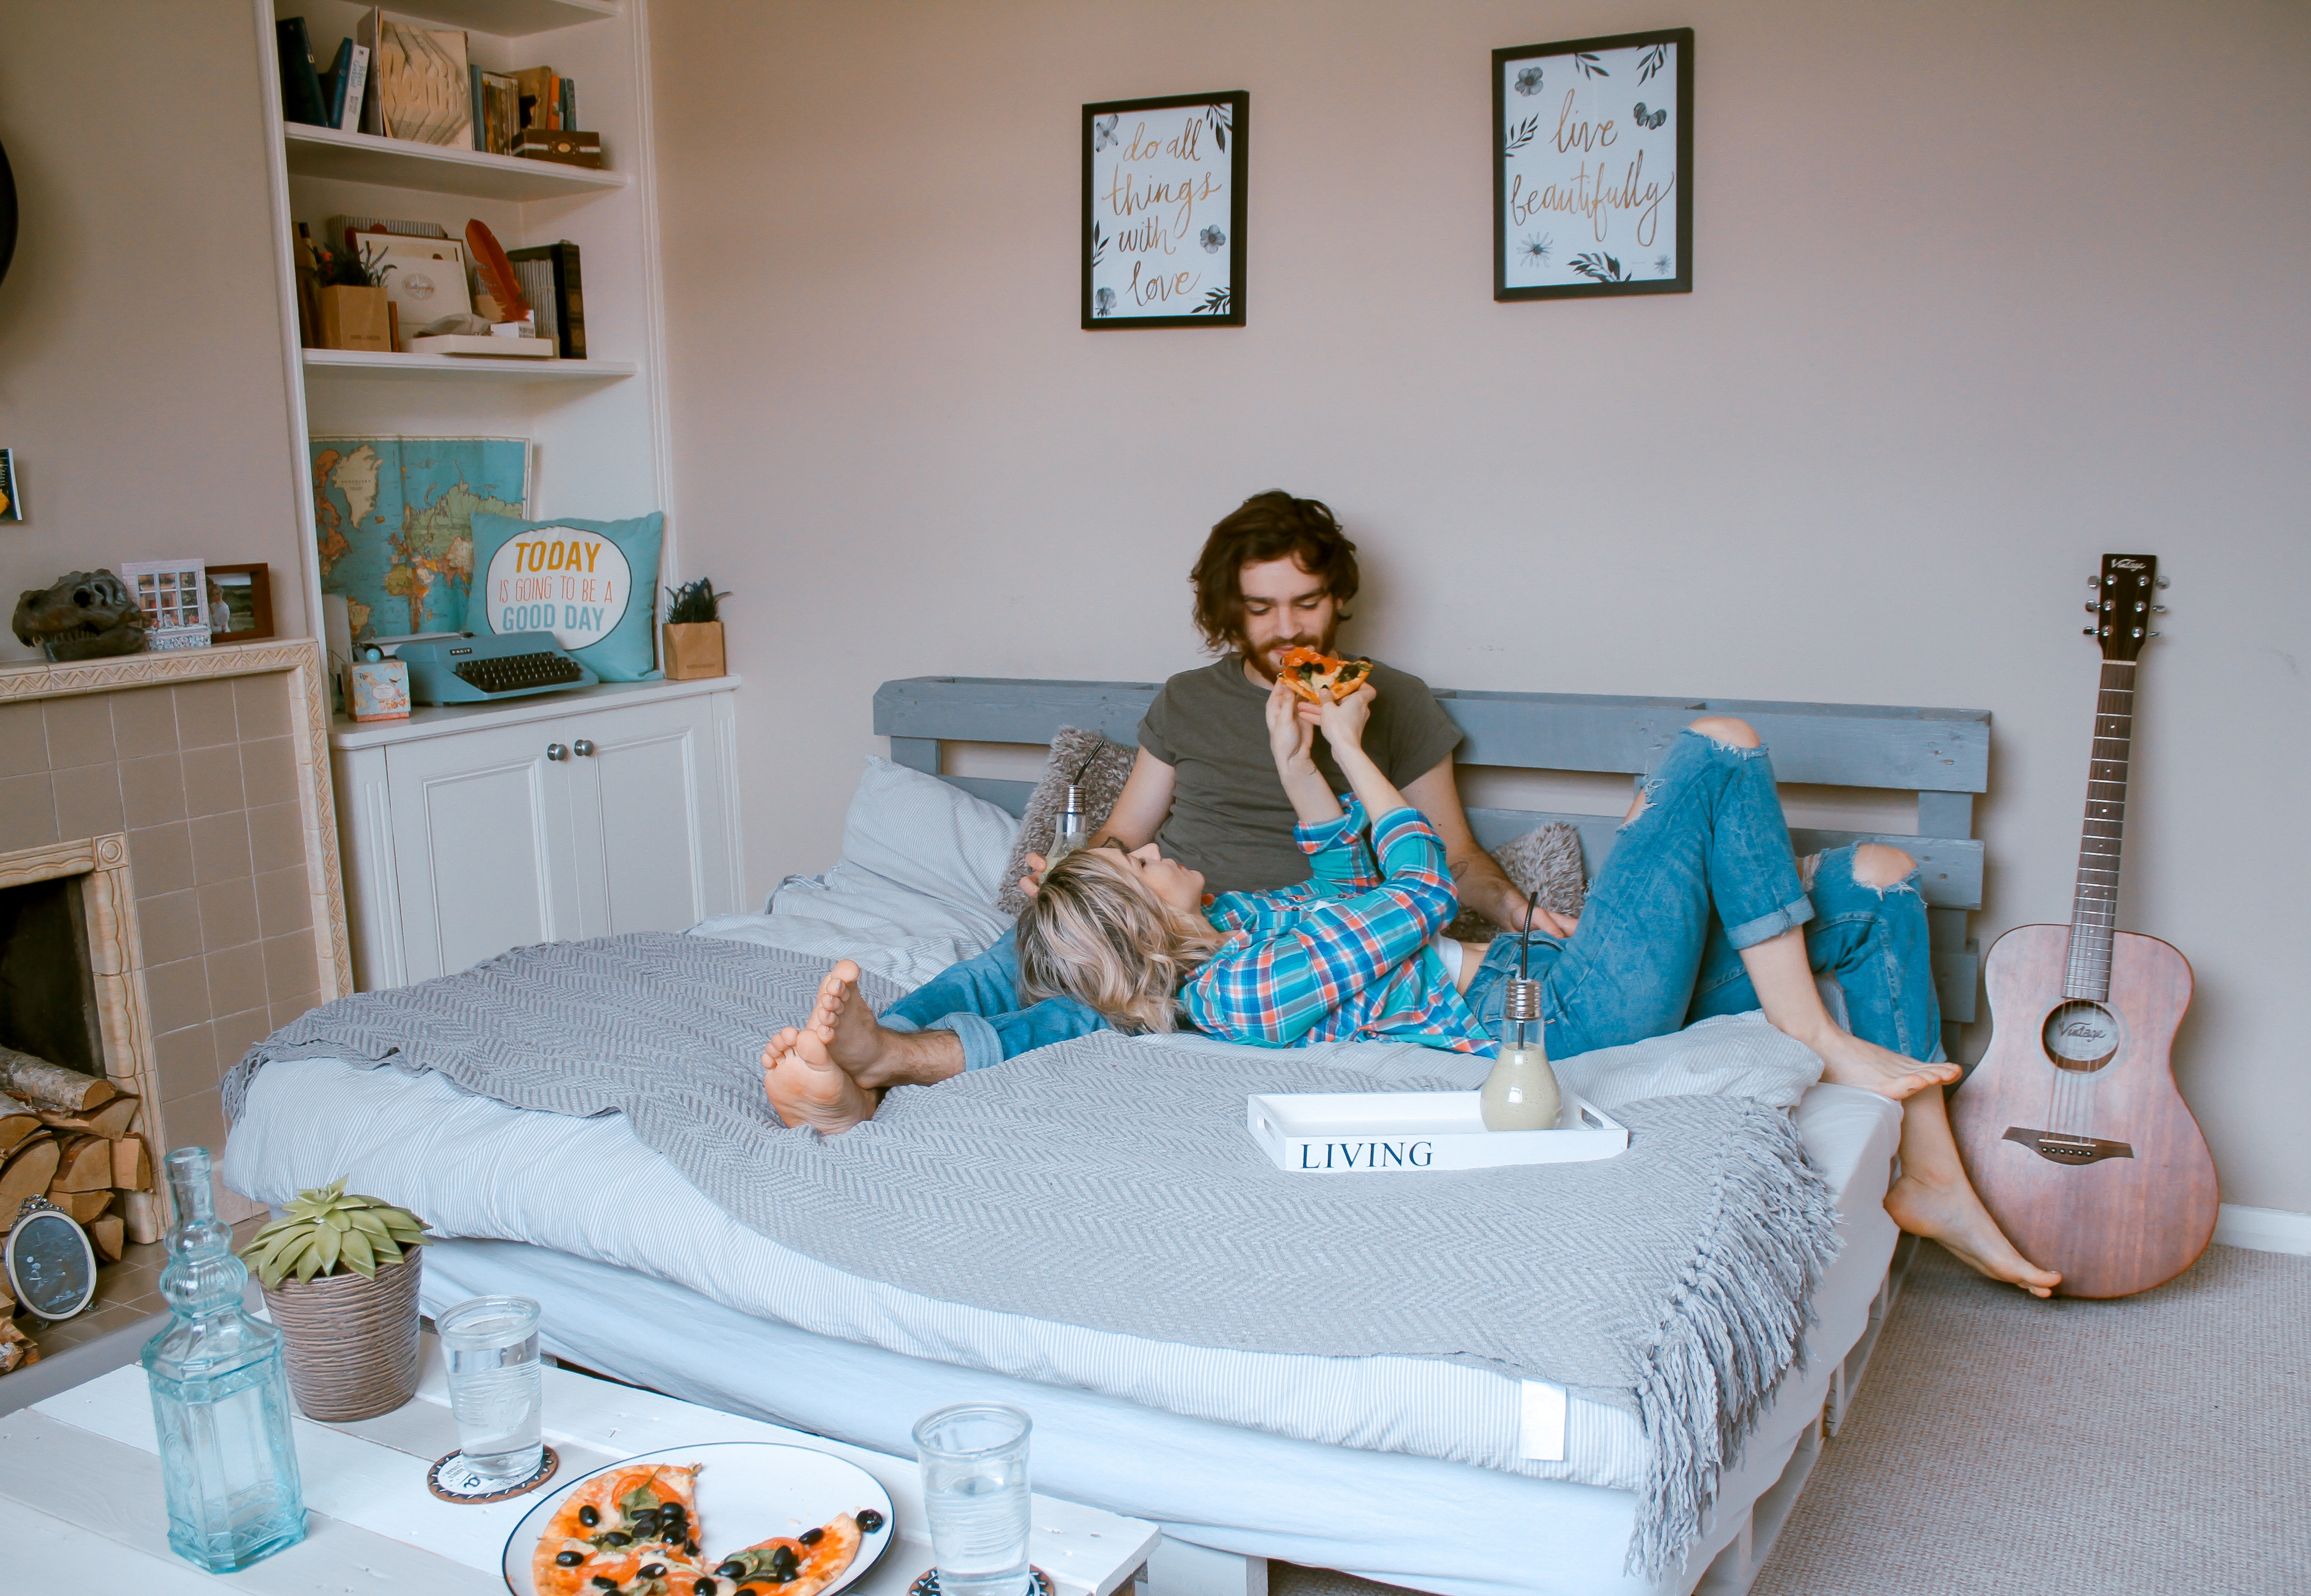 Home Rental vs Hotel for Couples